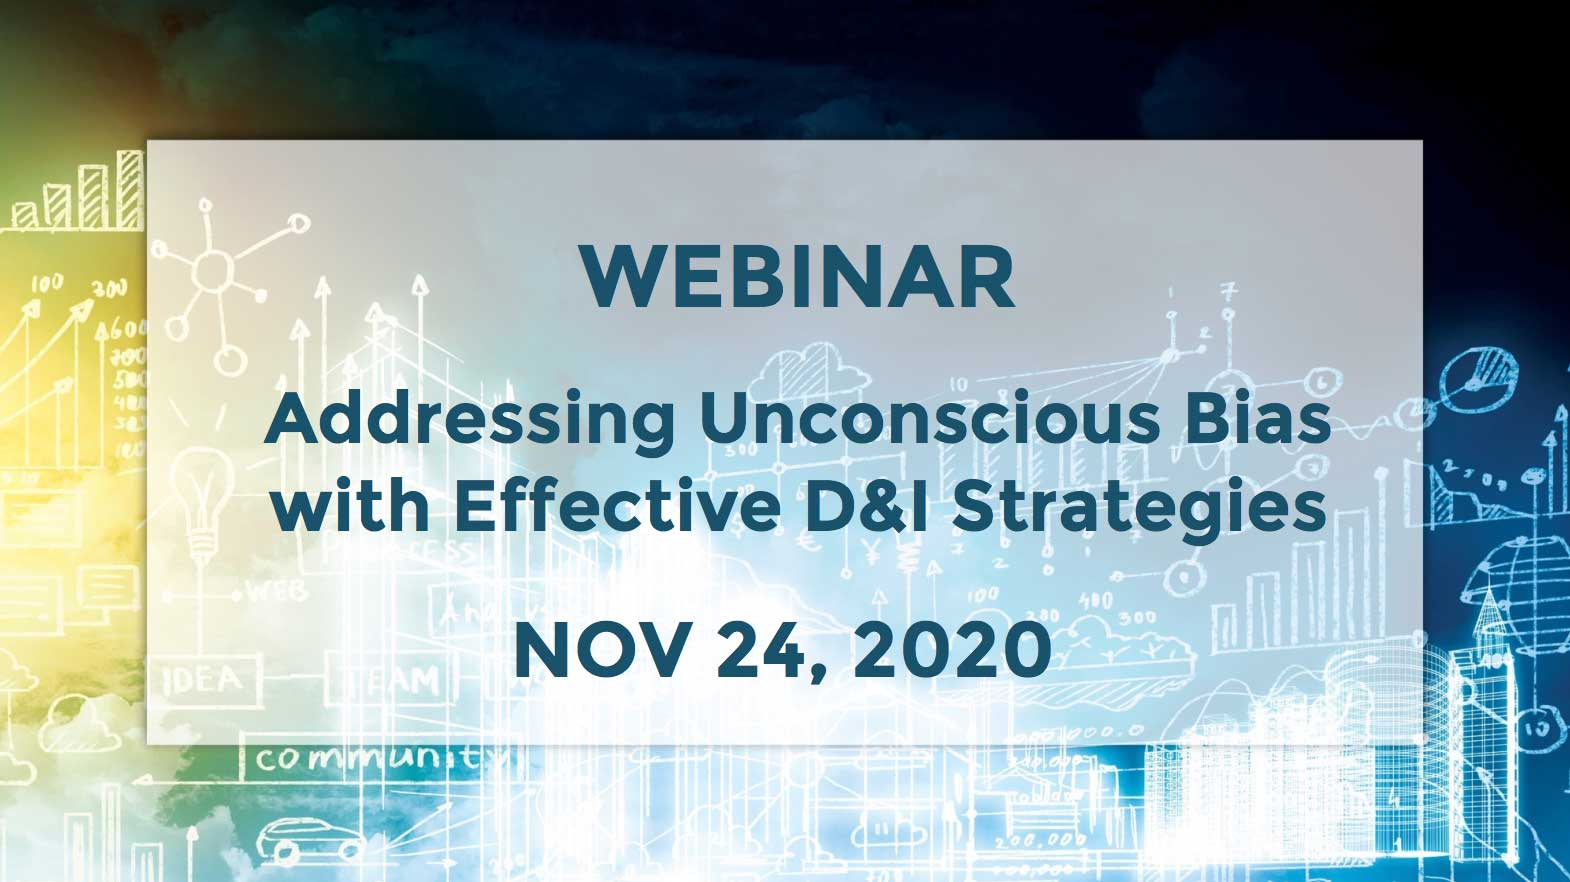 November 24 – Addressing Unconscious Bias with Effective D&I Strategies